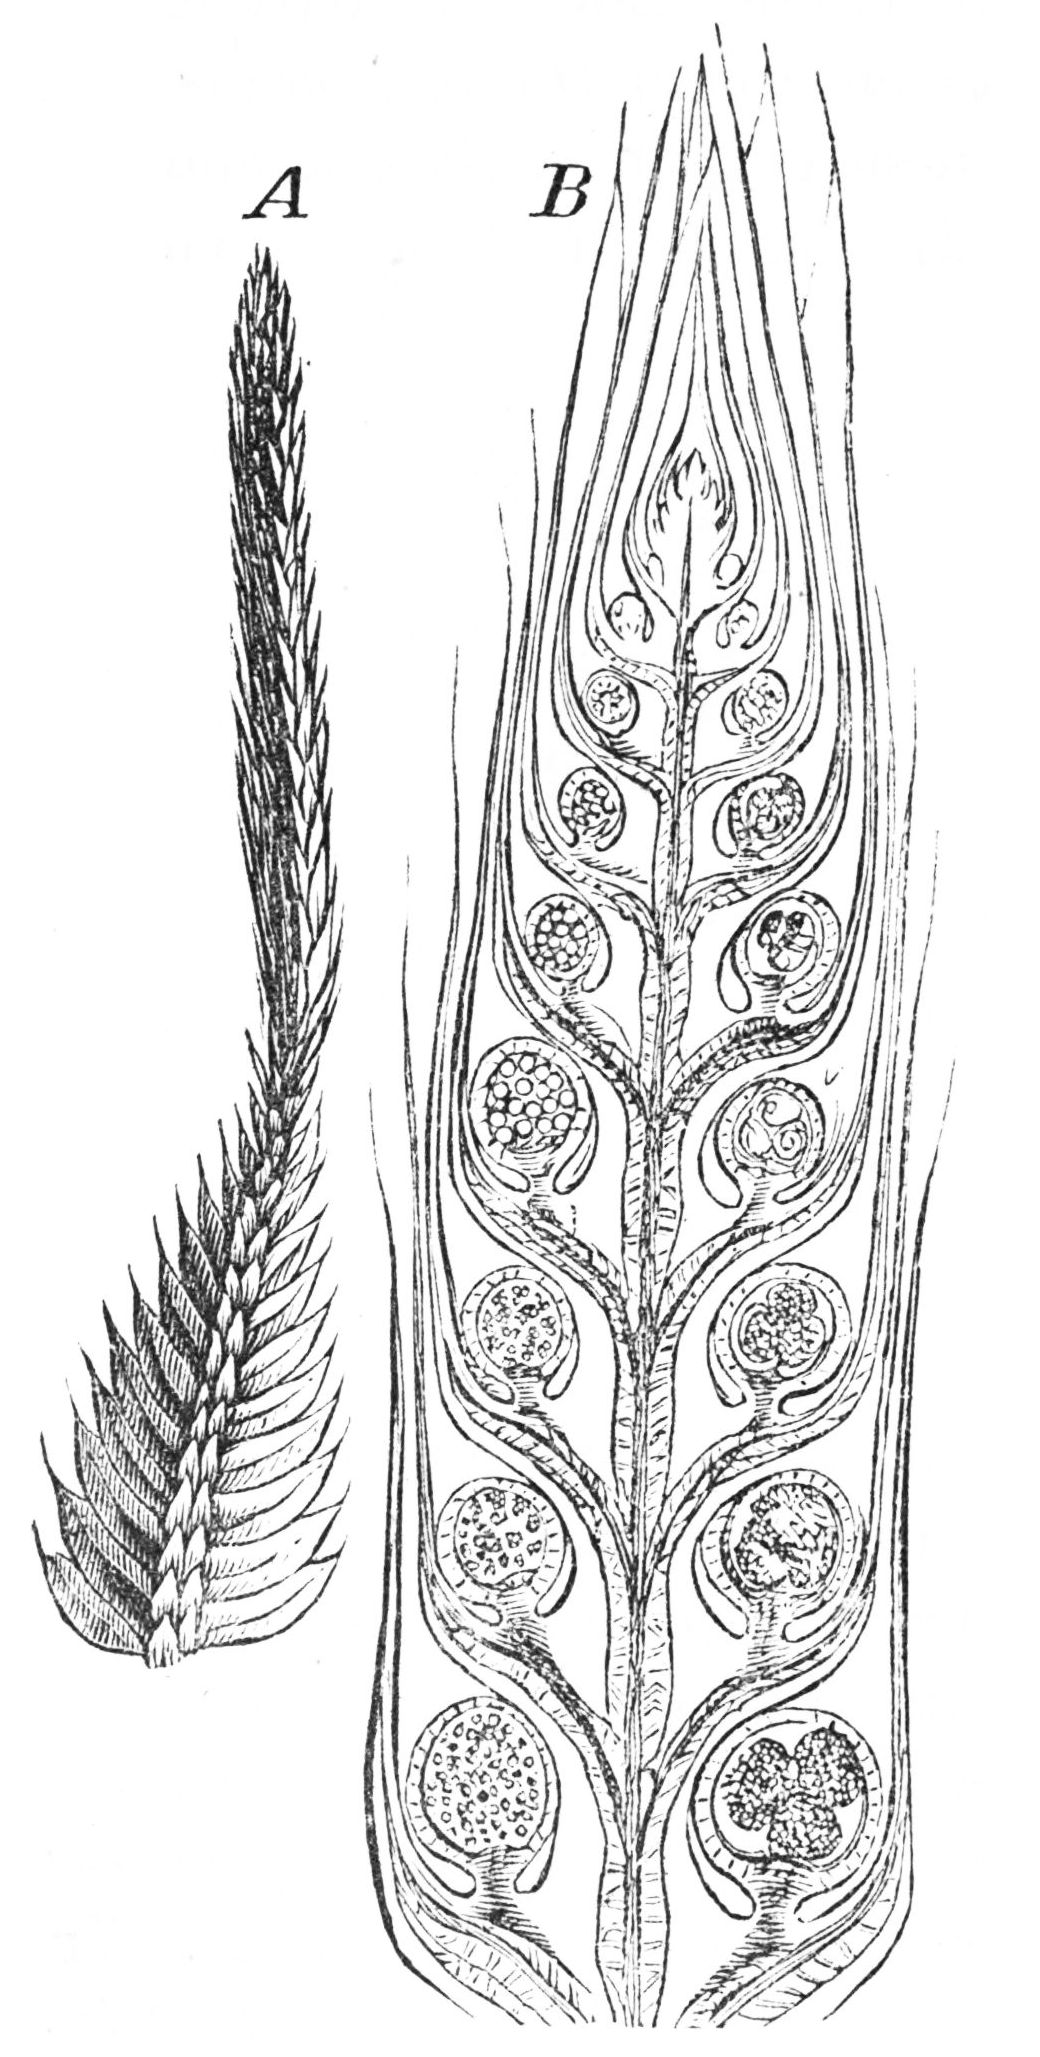 PSM V25 D176 Enlarged spore bearing branch of the club moss.jpg